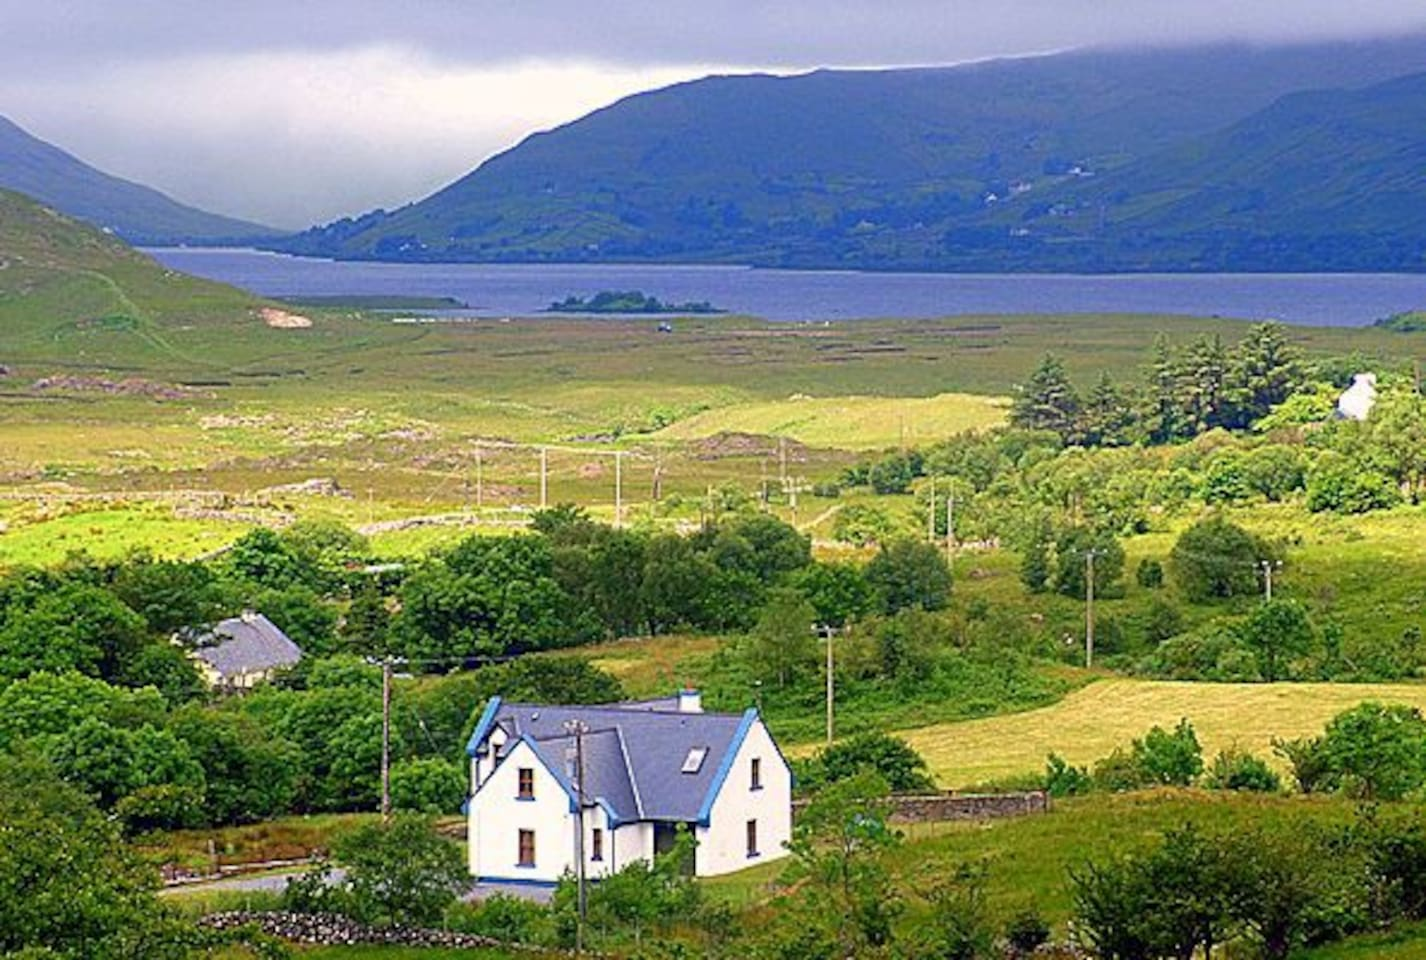 House with Lough na Fooey in background.